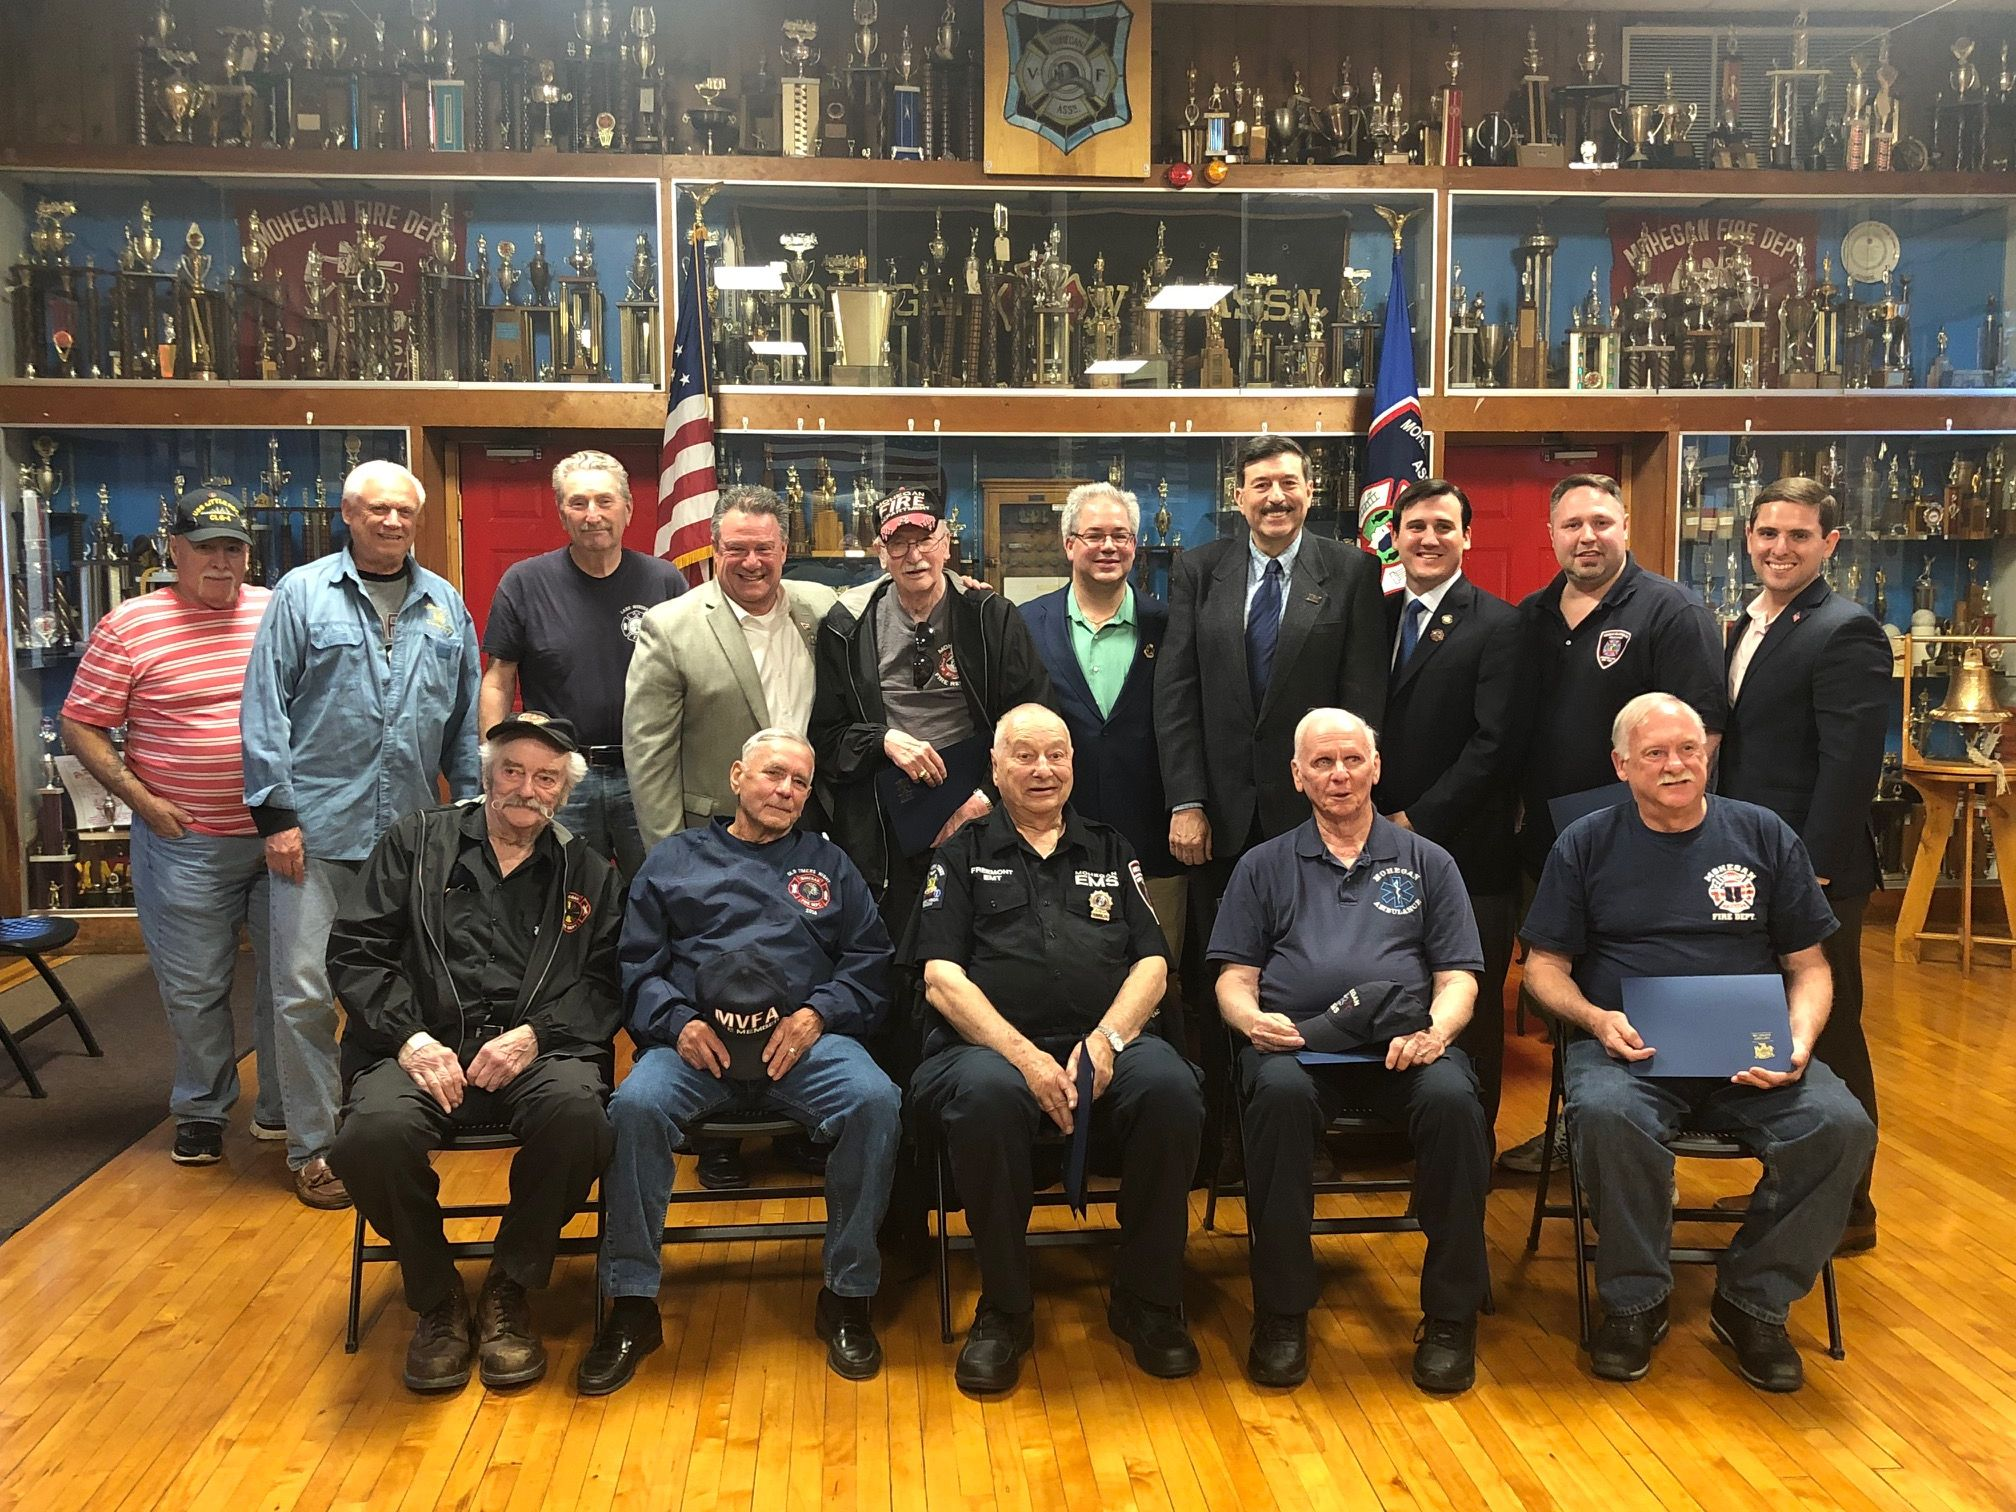 Please Stand: Military Service Members Of The Mohegan Lake Fire Department Honored